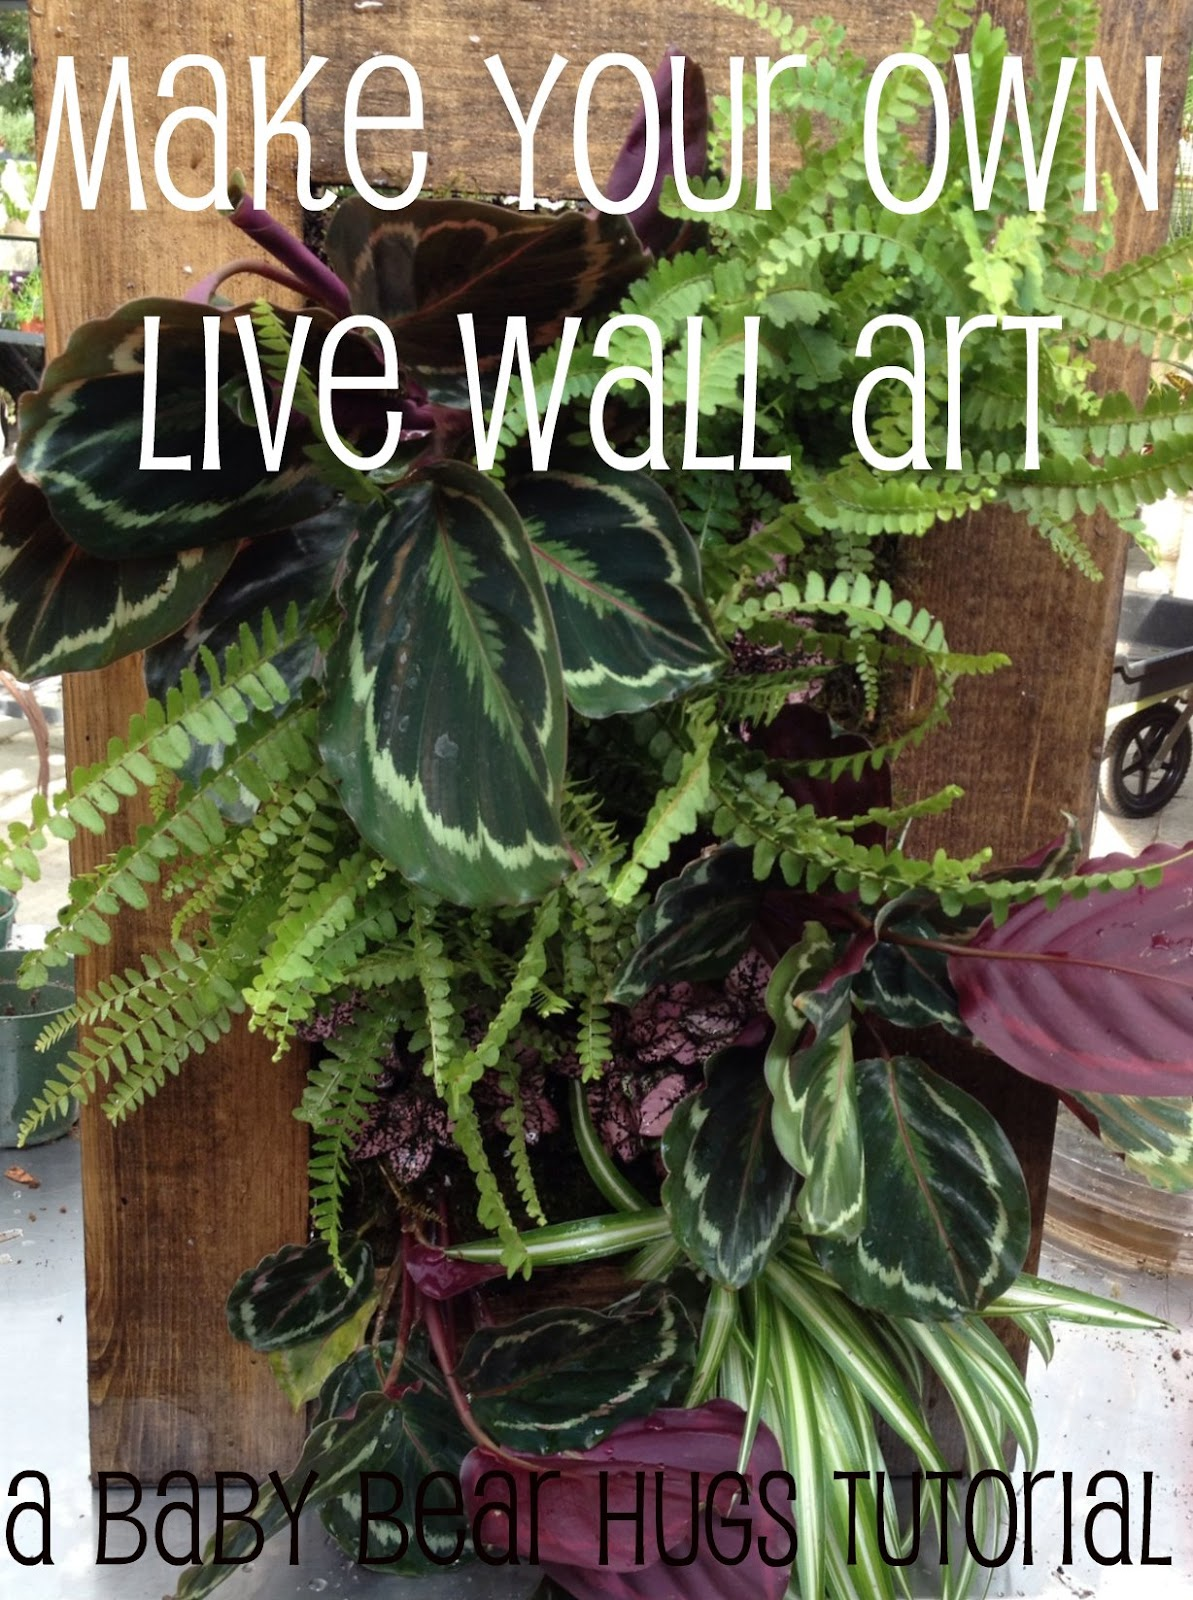 living wall art DIY tutorial framed indoor garden grovertLiving Wall Diy